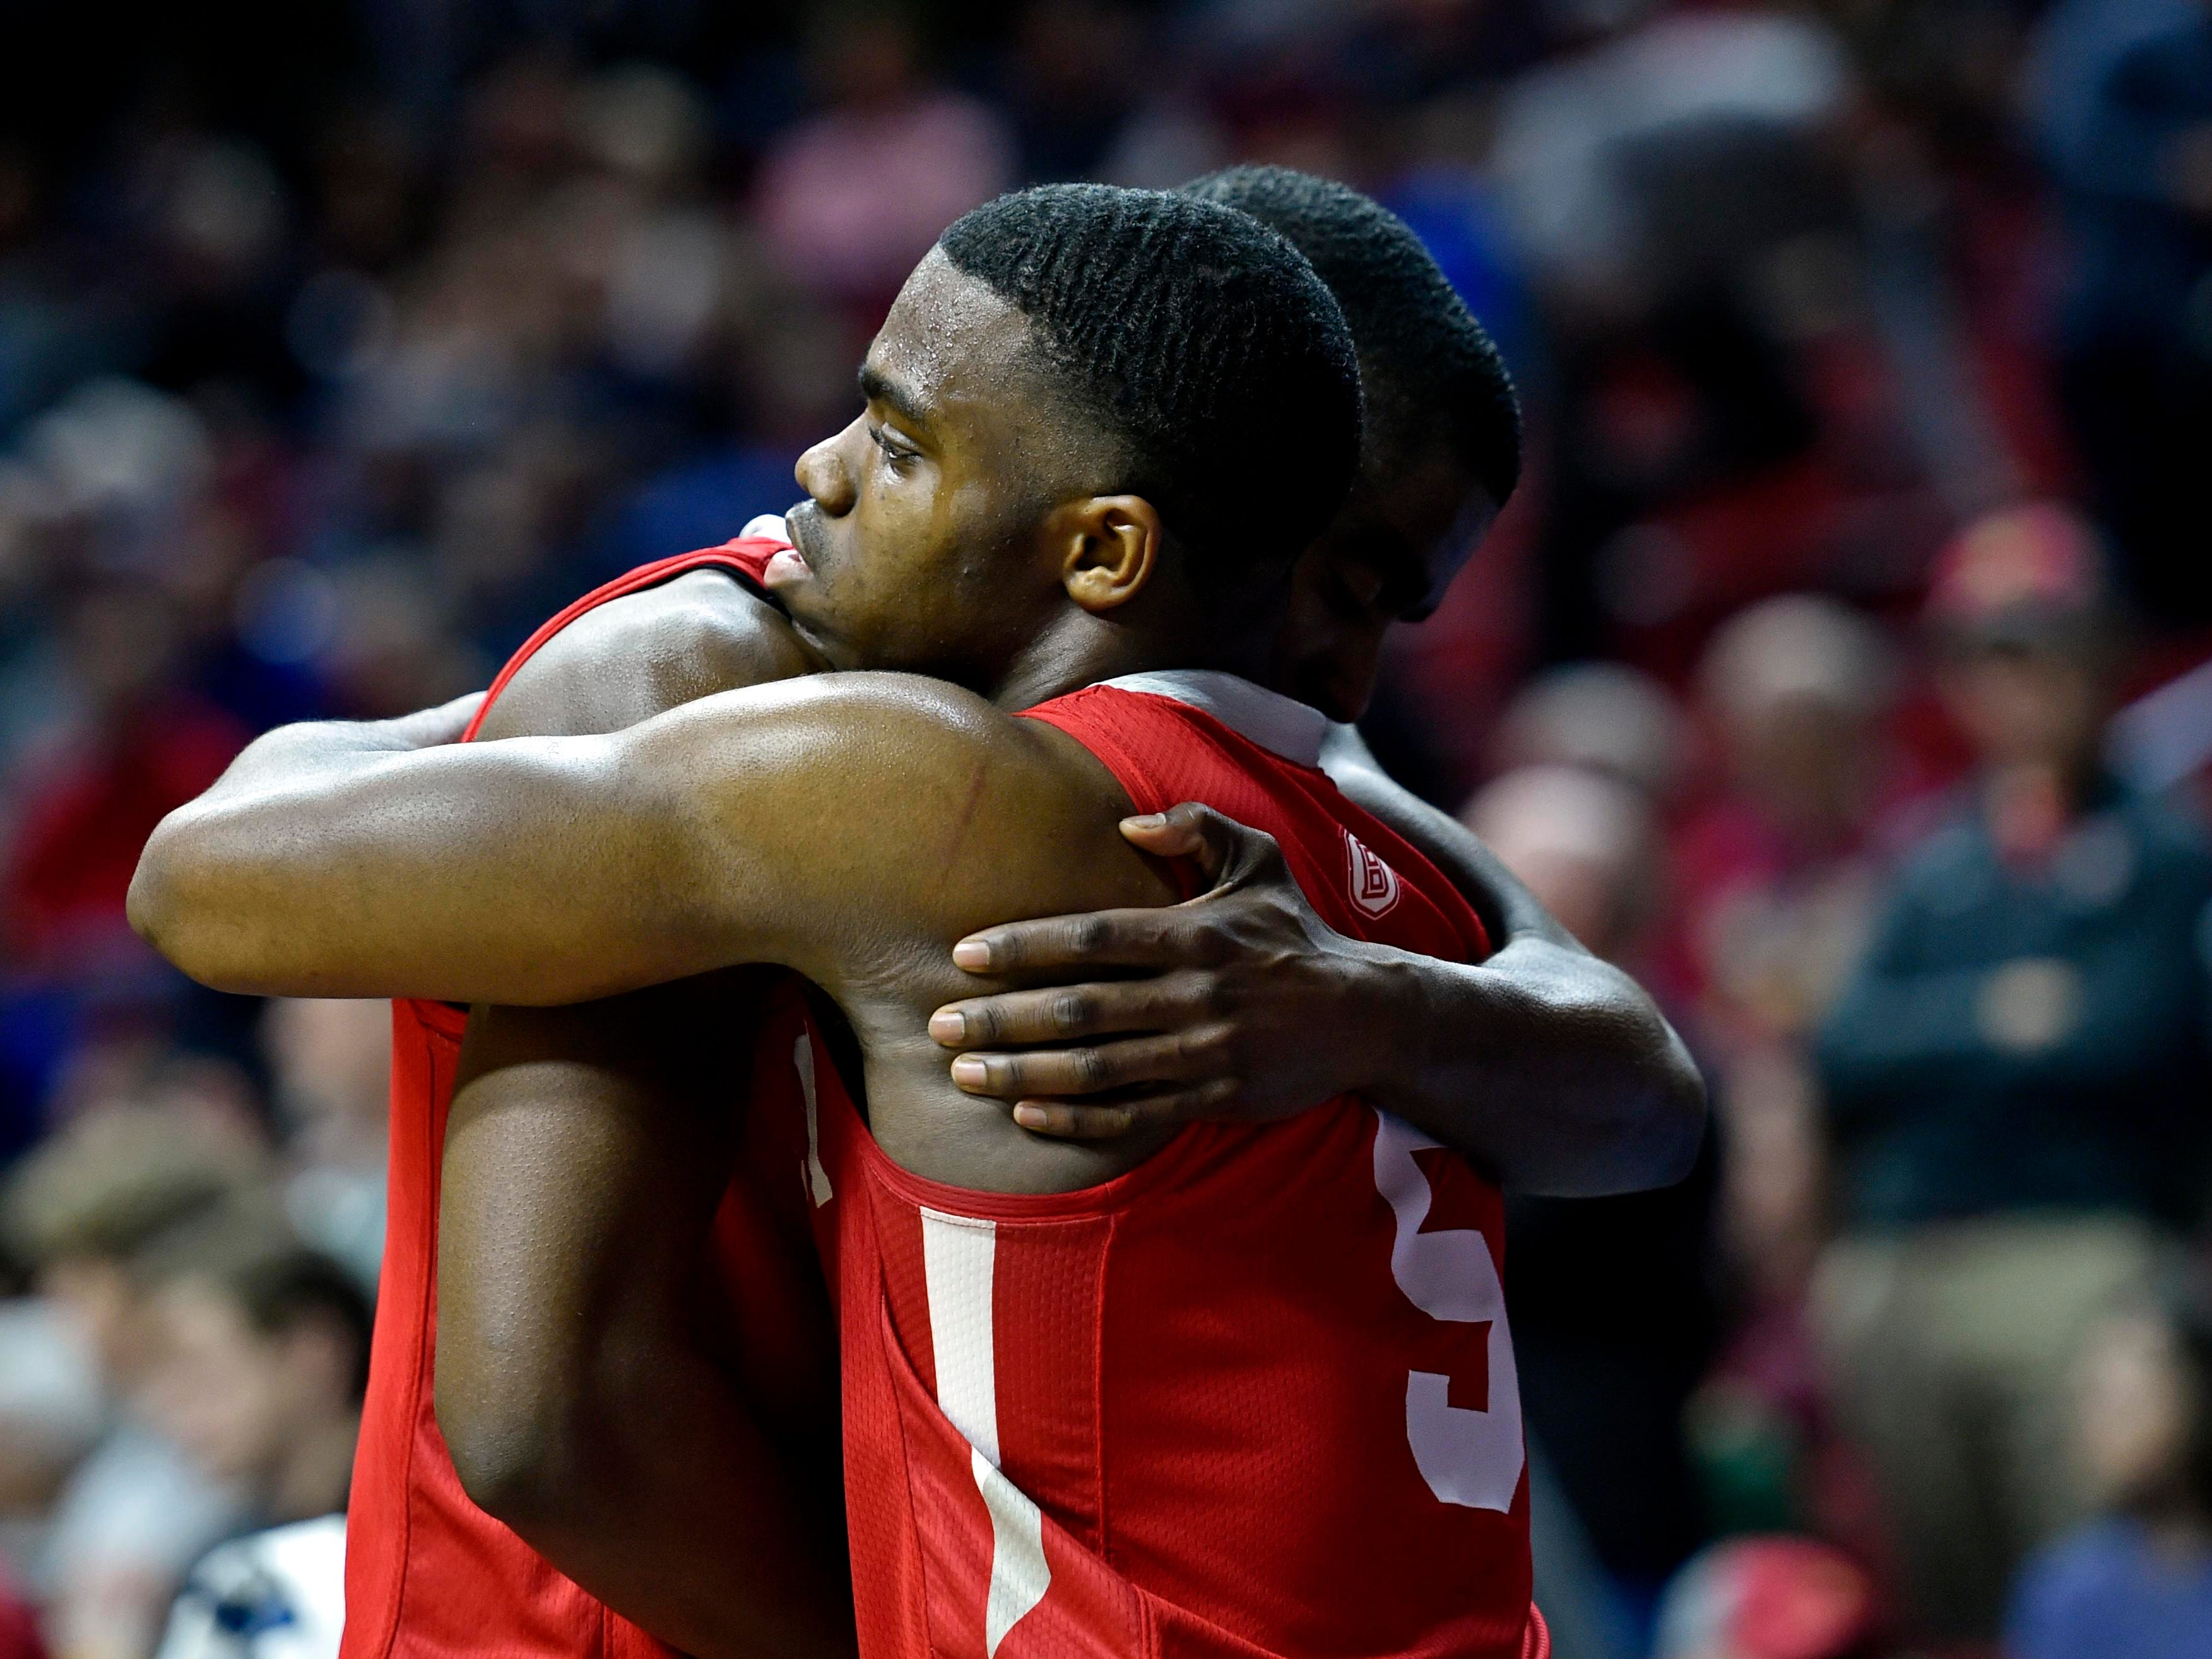 First round: No. 15 Bradley loses to No. 2 Michigan State, 76-65.